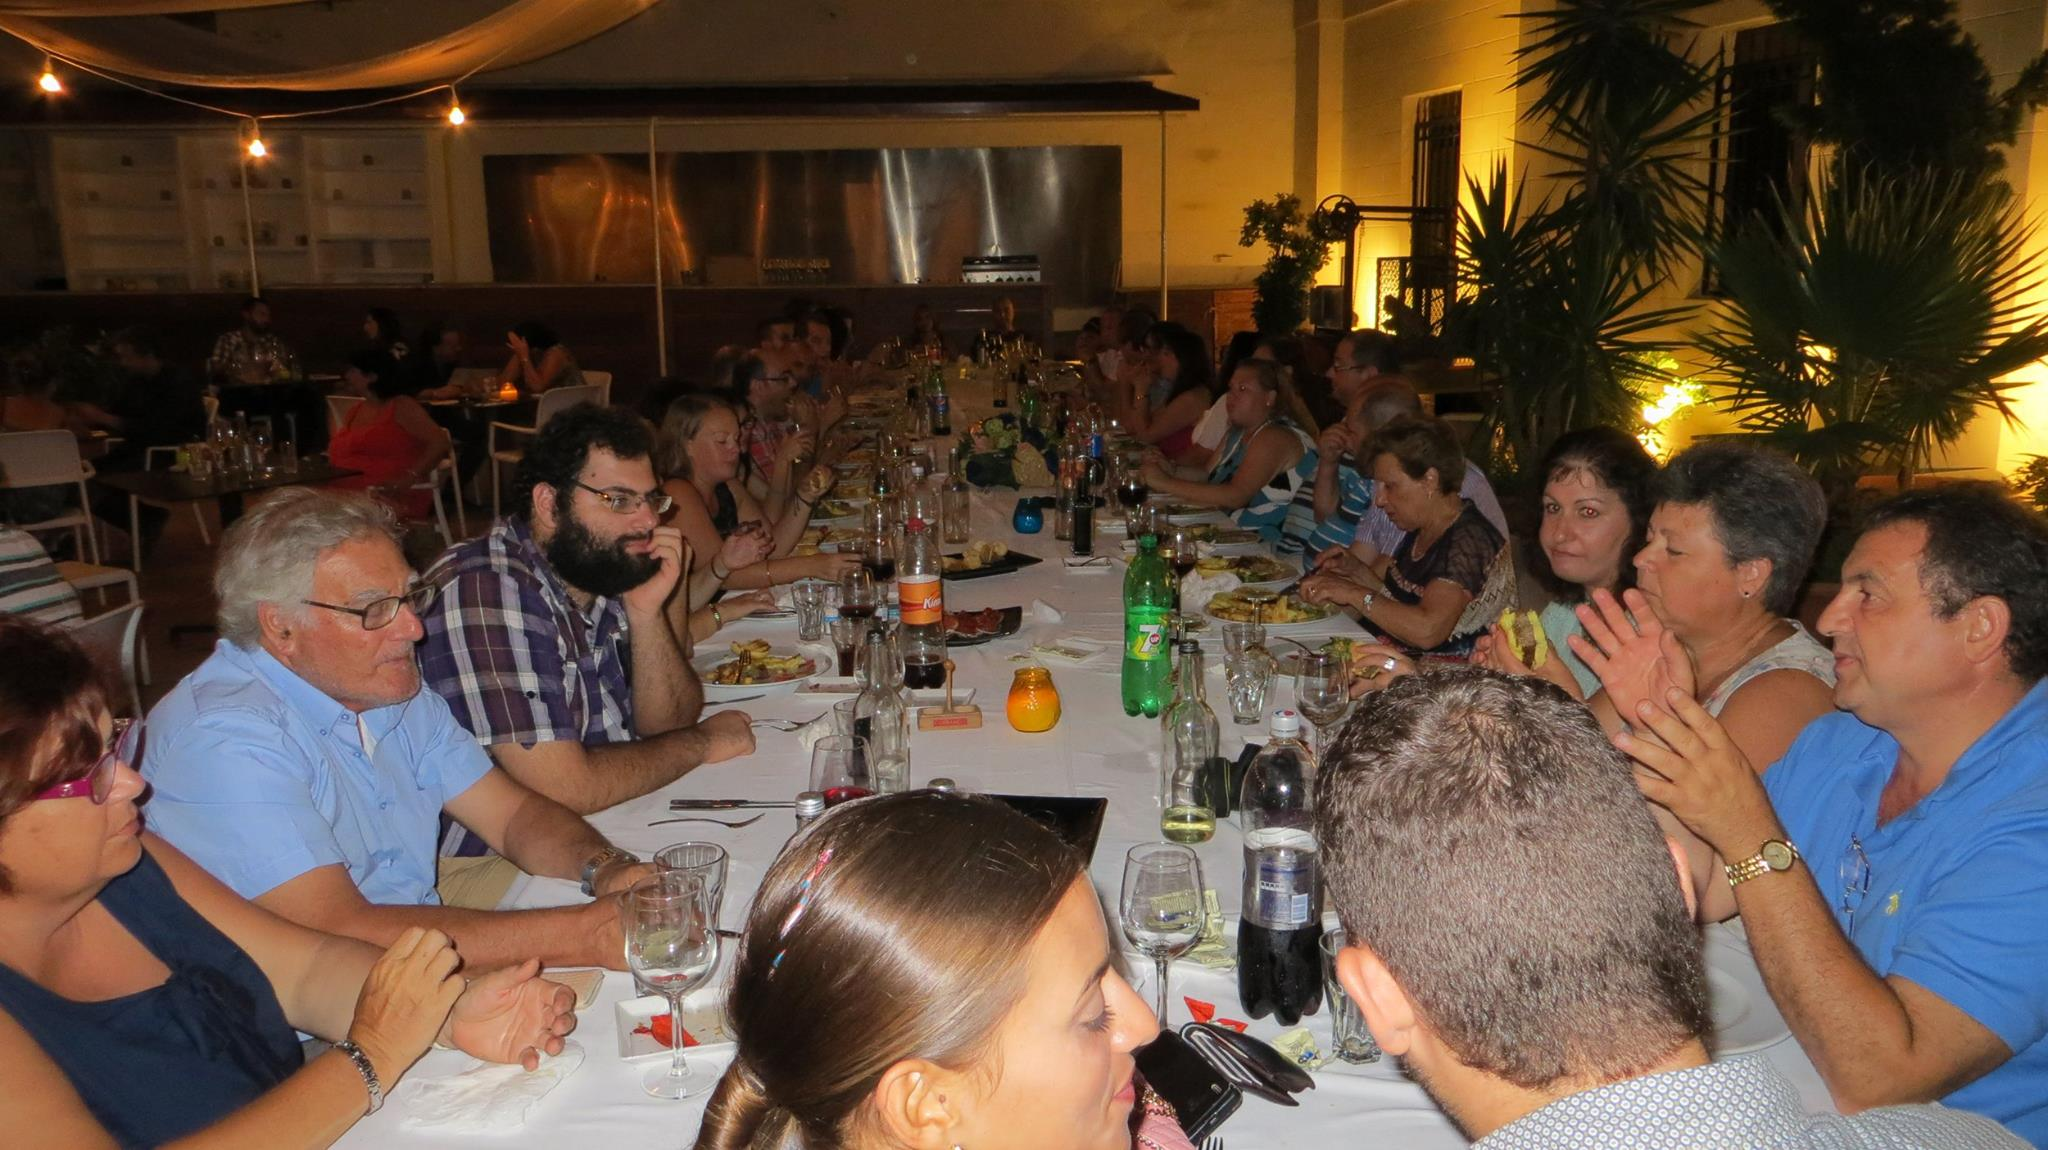 TNCS Social event - July 2015